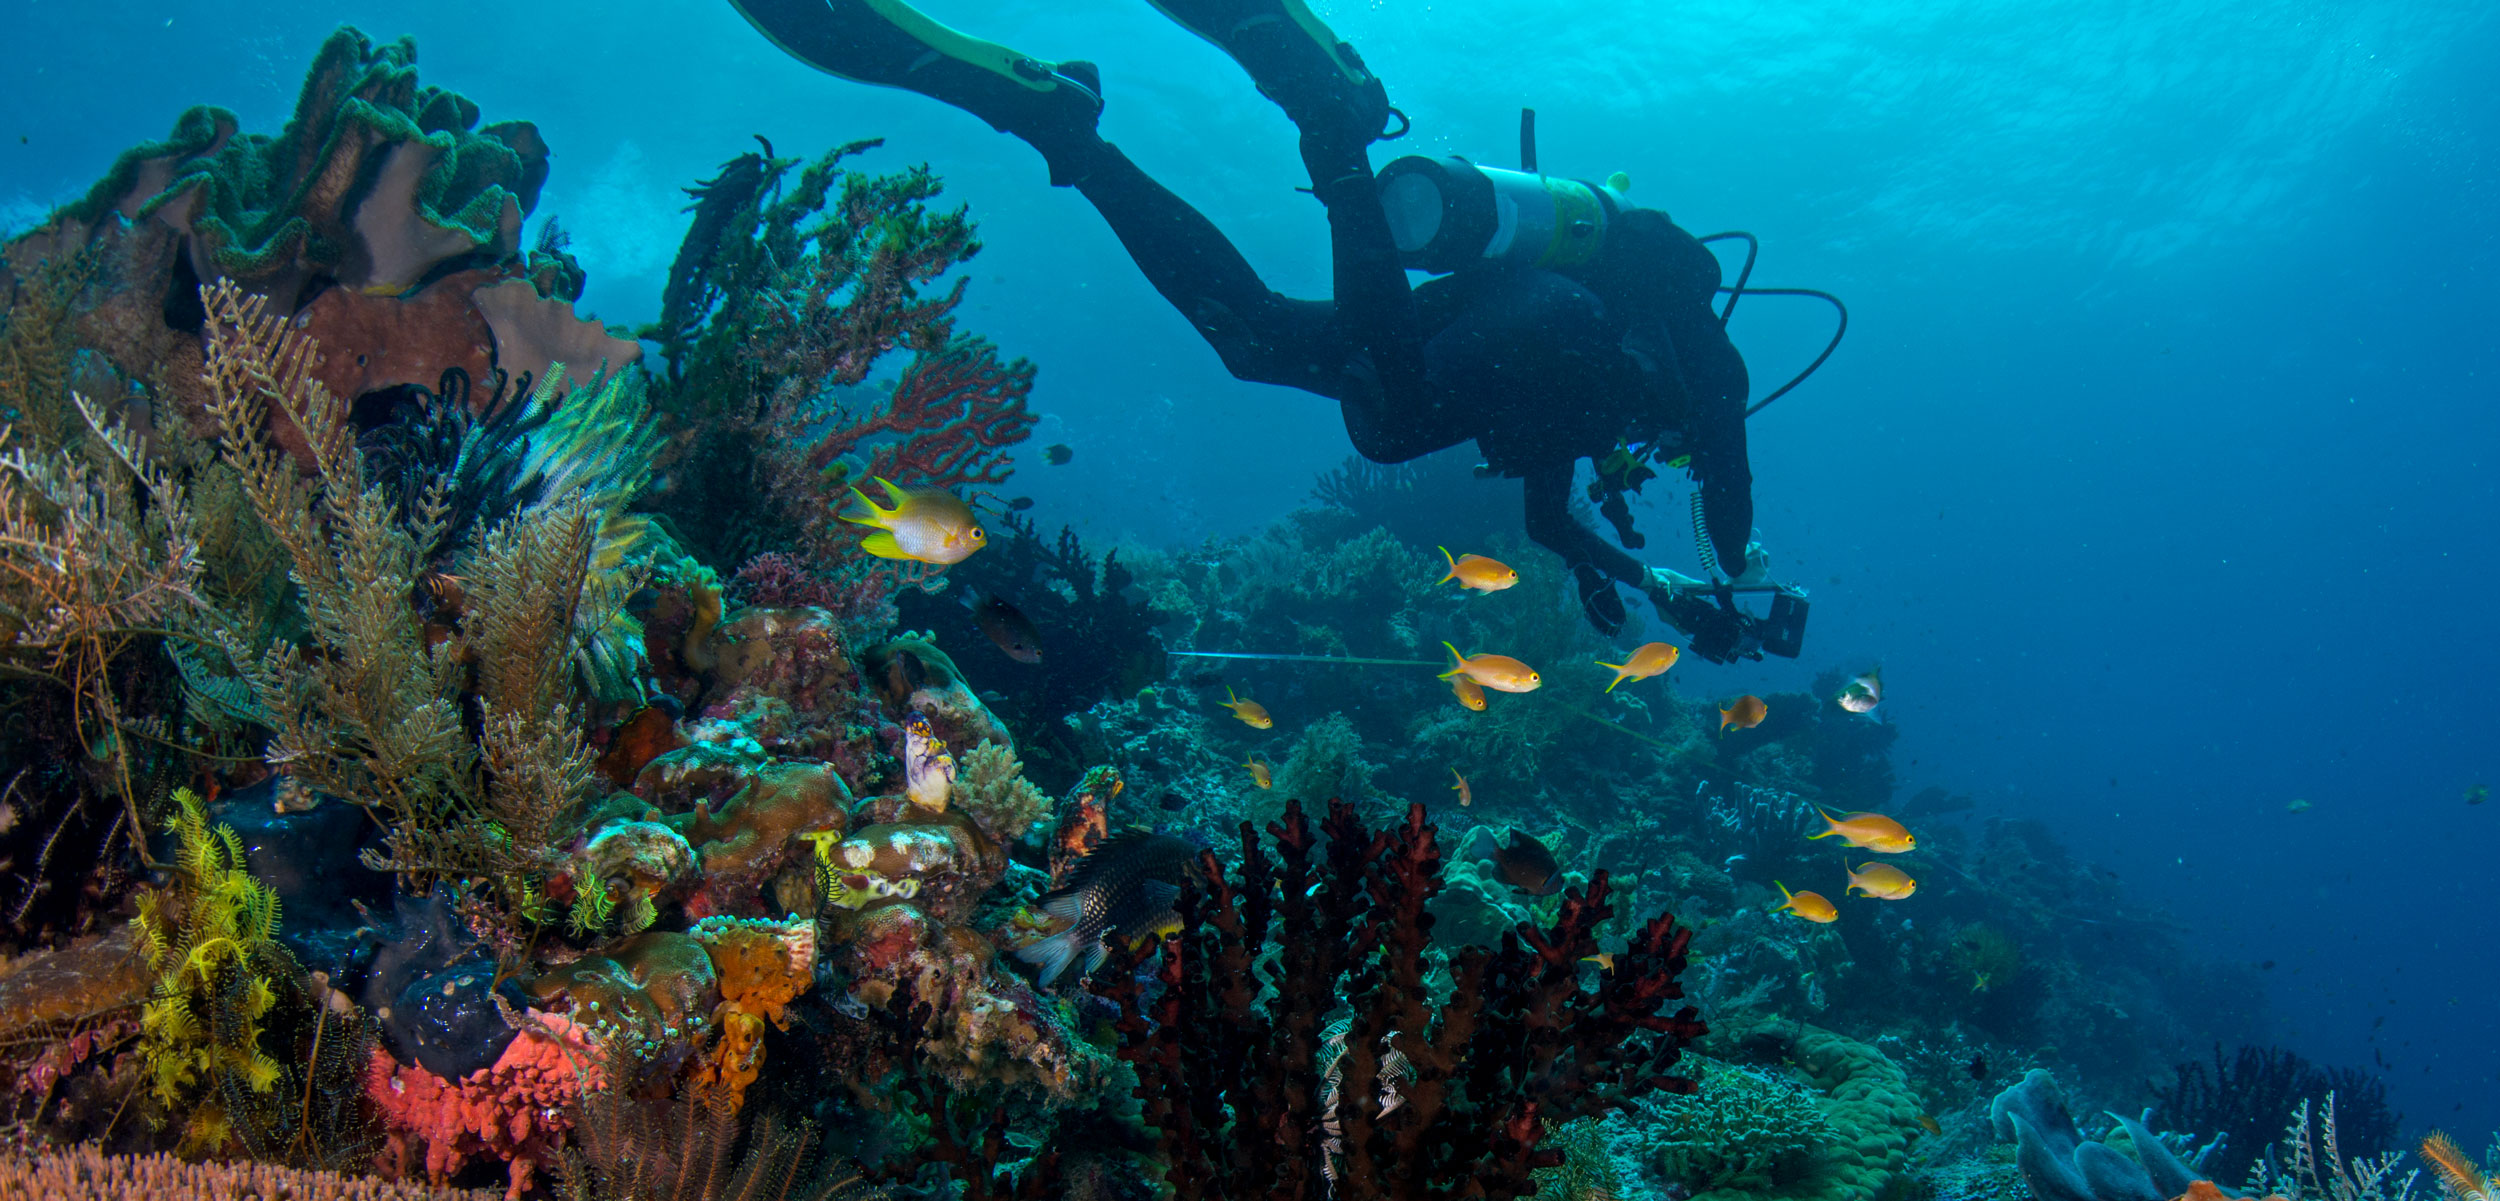 A diver from the nonprofit organization Reef Life Survey swims over an Indonesian reef